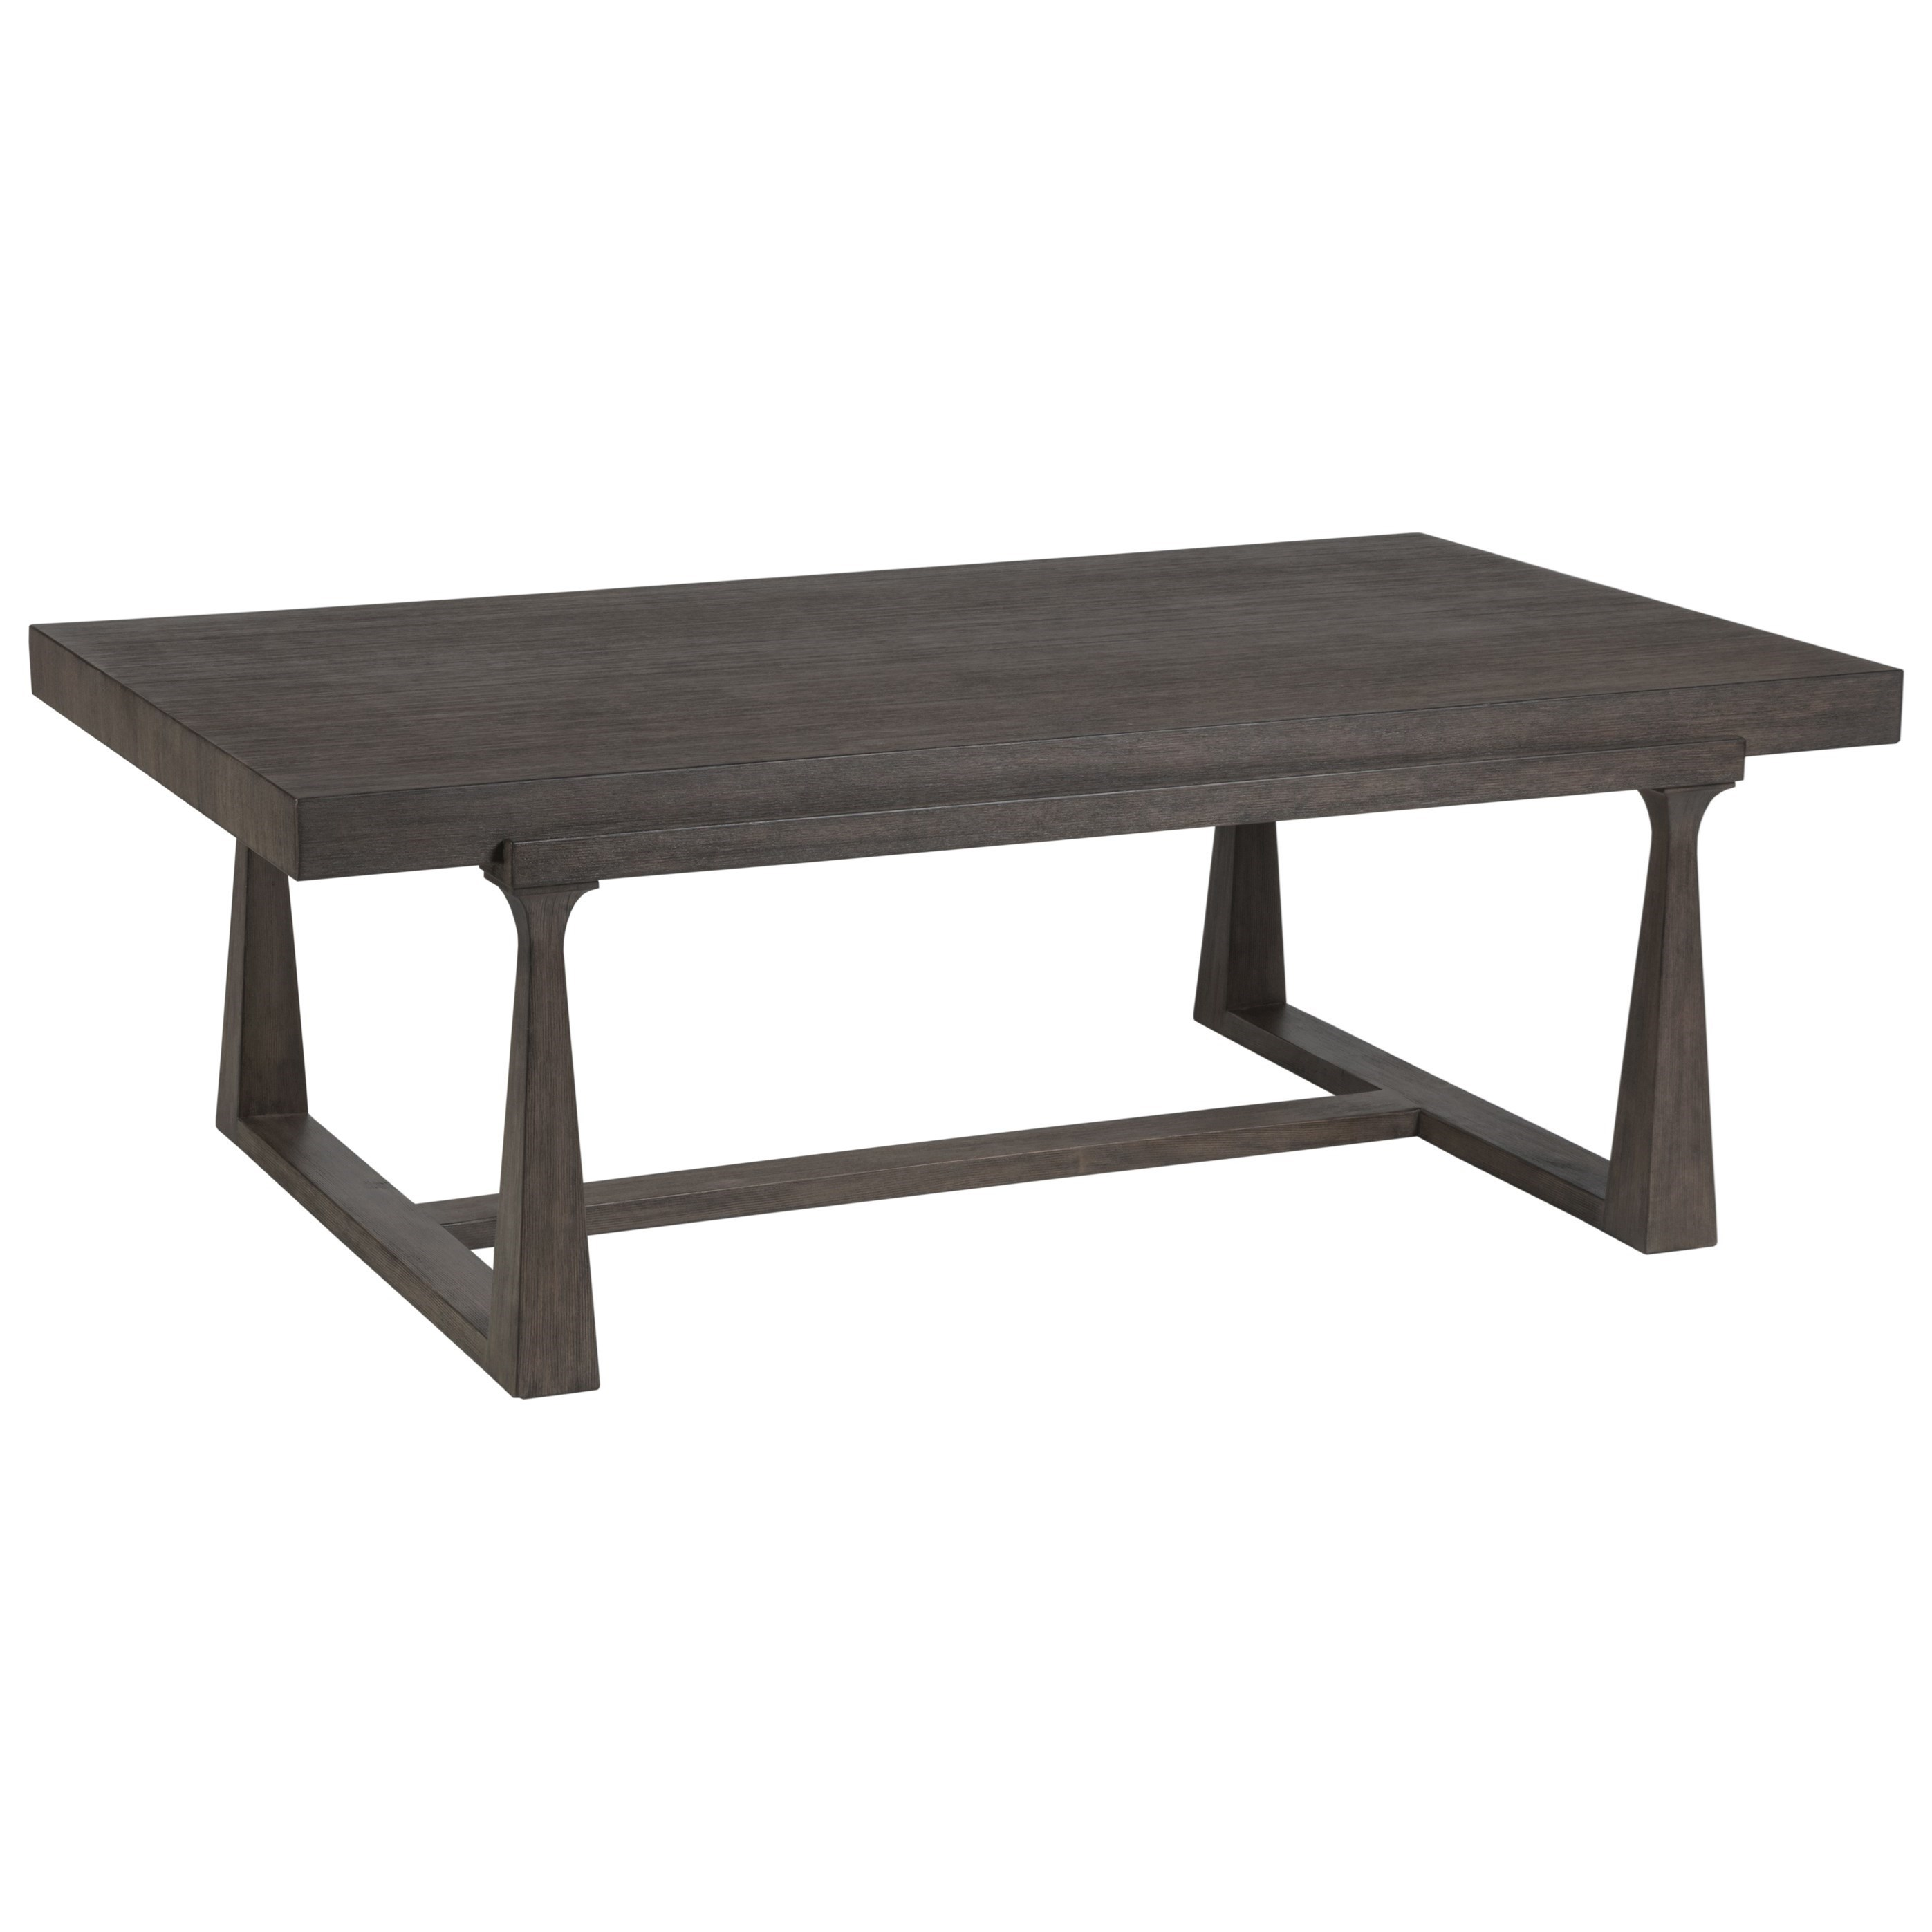 Cohesion Grantland Rectangular Cocktail Table by Artistica at Baer's Furniture